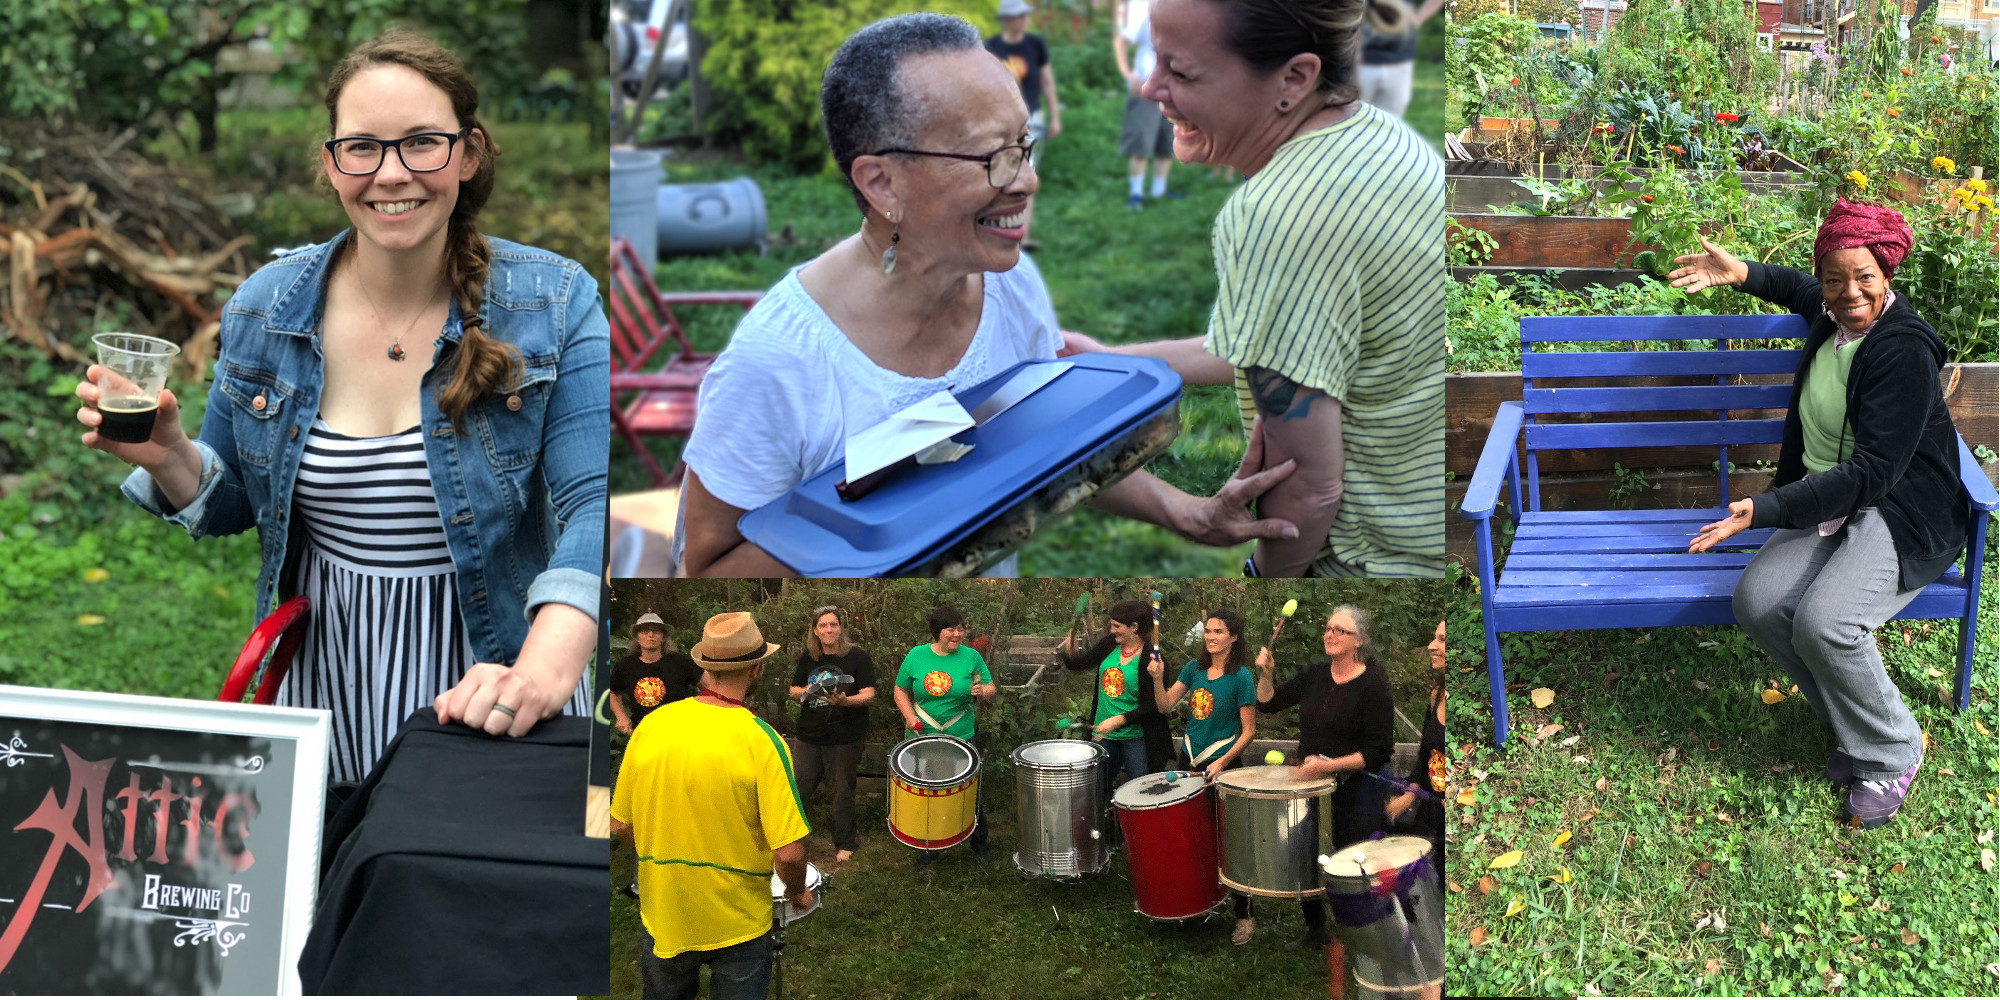 photos of beer taps, covered dishes, picnicers and drummers